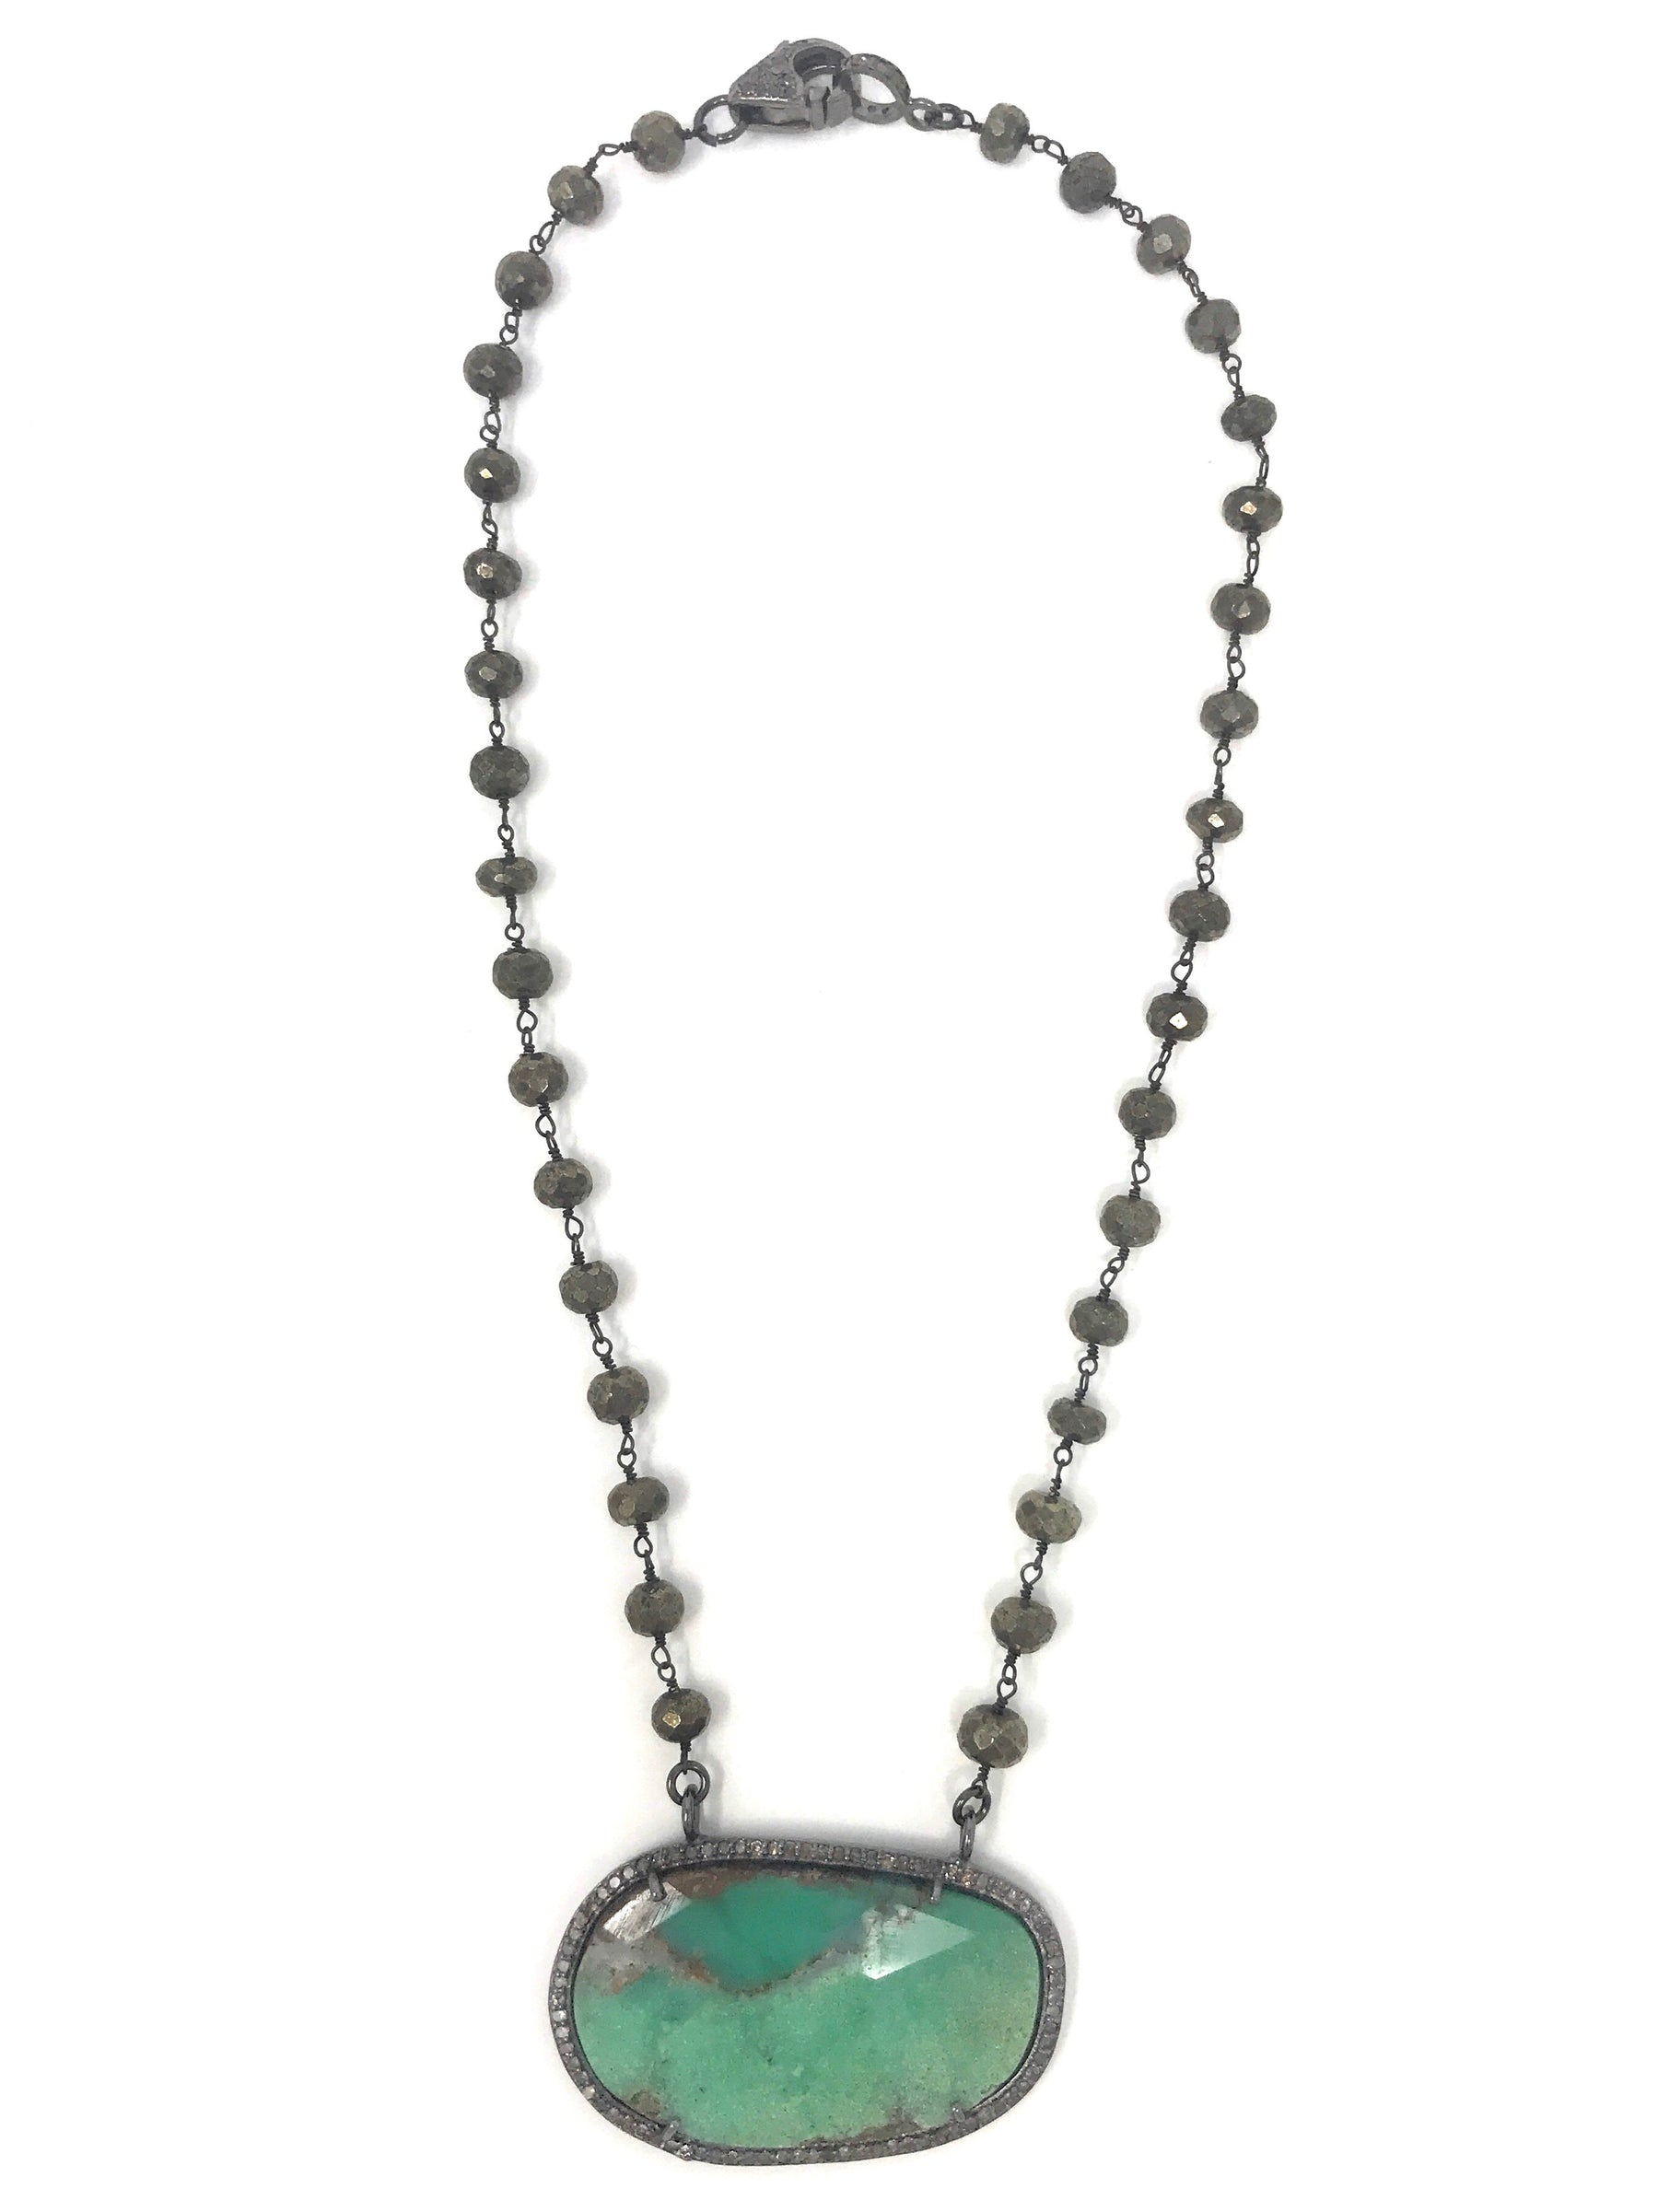 Chrysoprase and pave diamond pendant with pyrite chain with diamond chrysoprase and pave diamond pendant with pyrite chain with diamond clasp necklace aloadofball Images